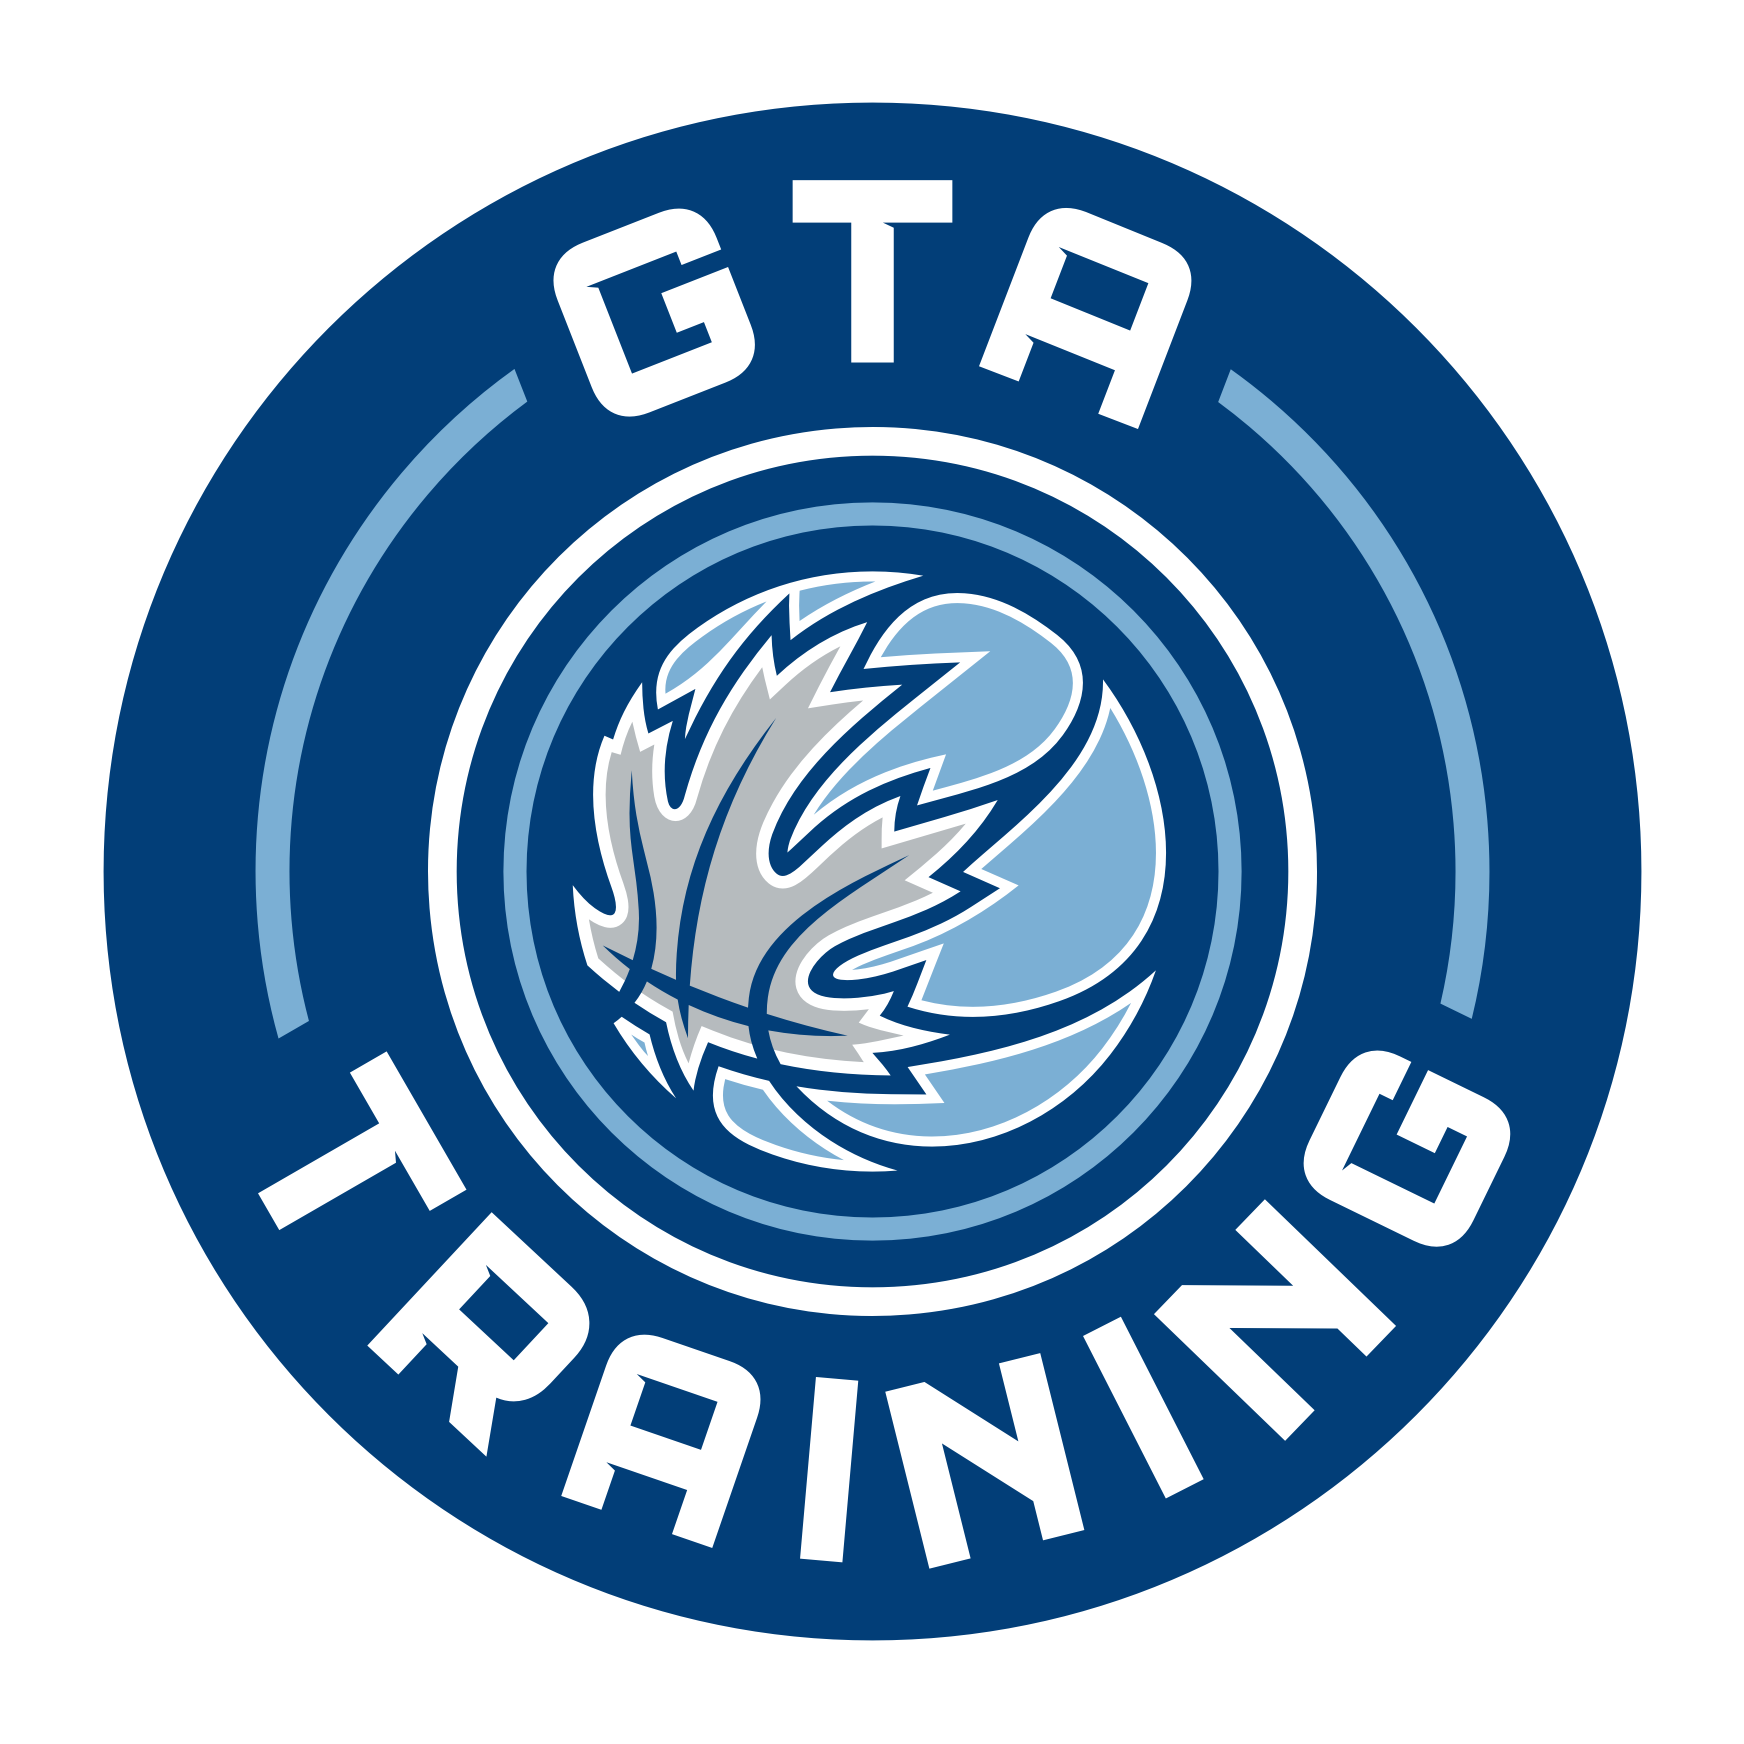 GTA Training - Toronto's Premier Basketball Training and Camps